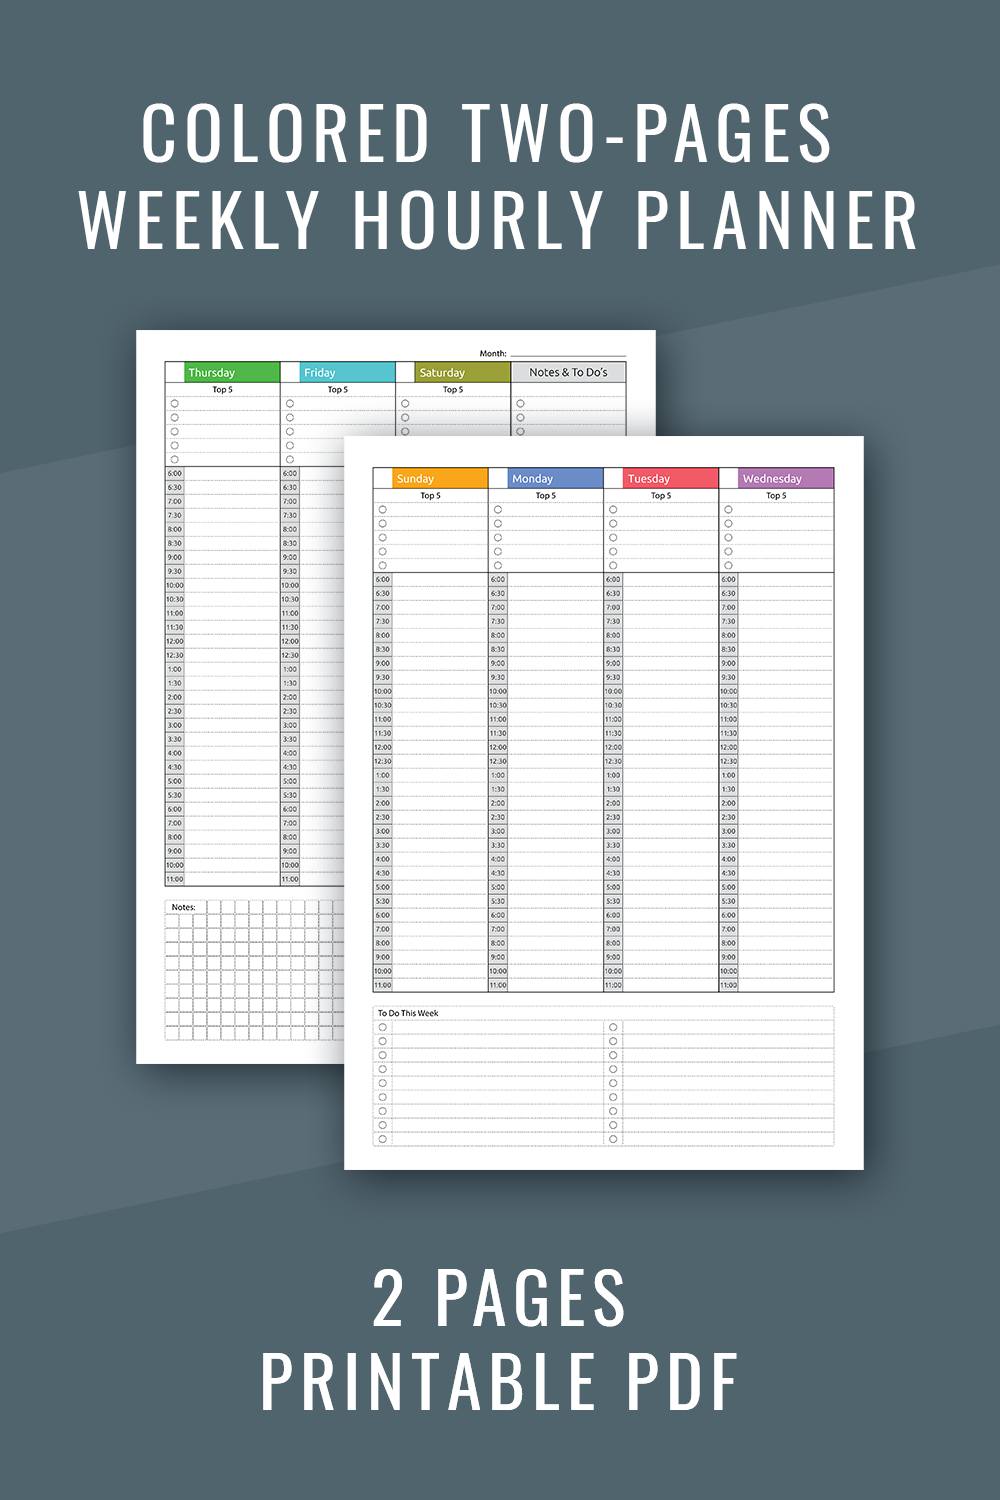 Free Weekly Hourly Planner Pdf